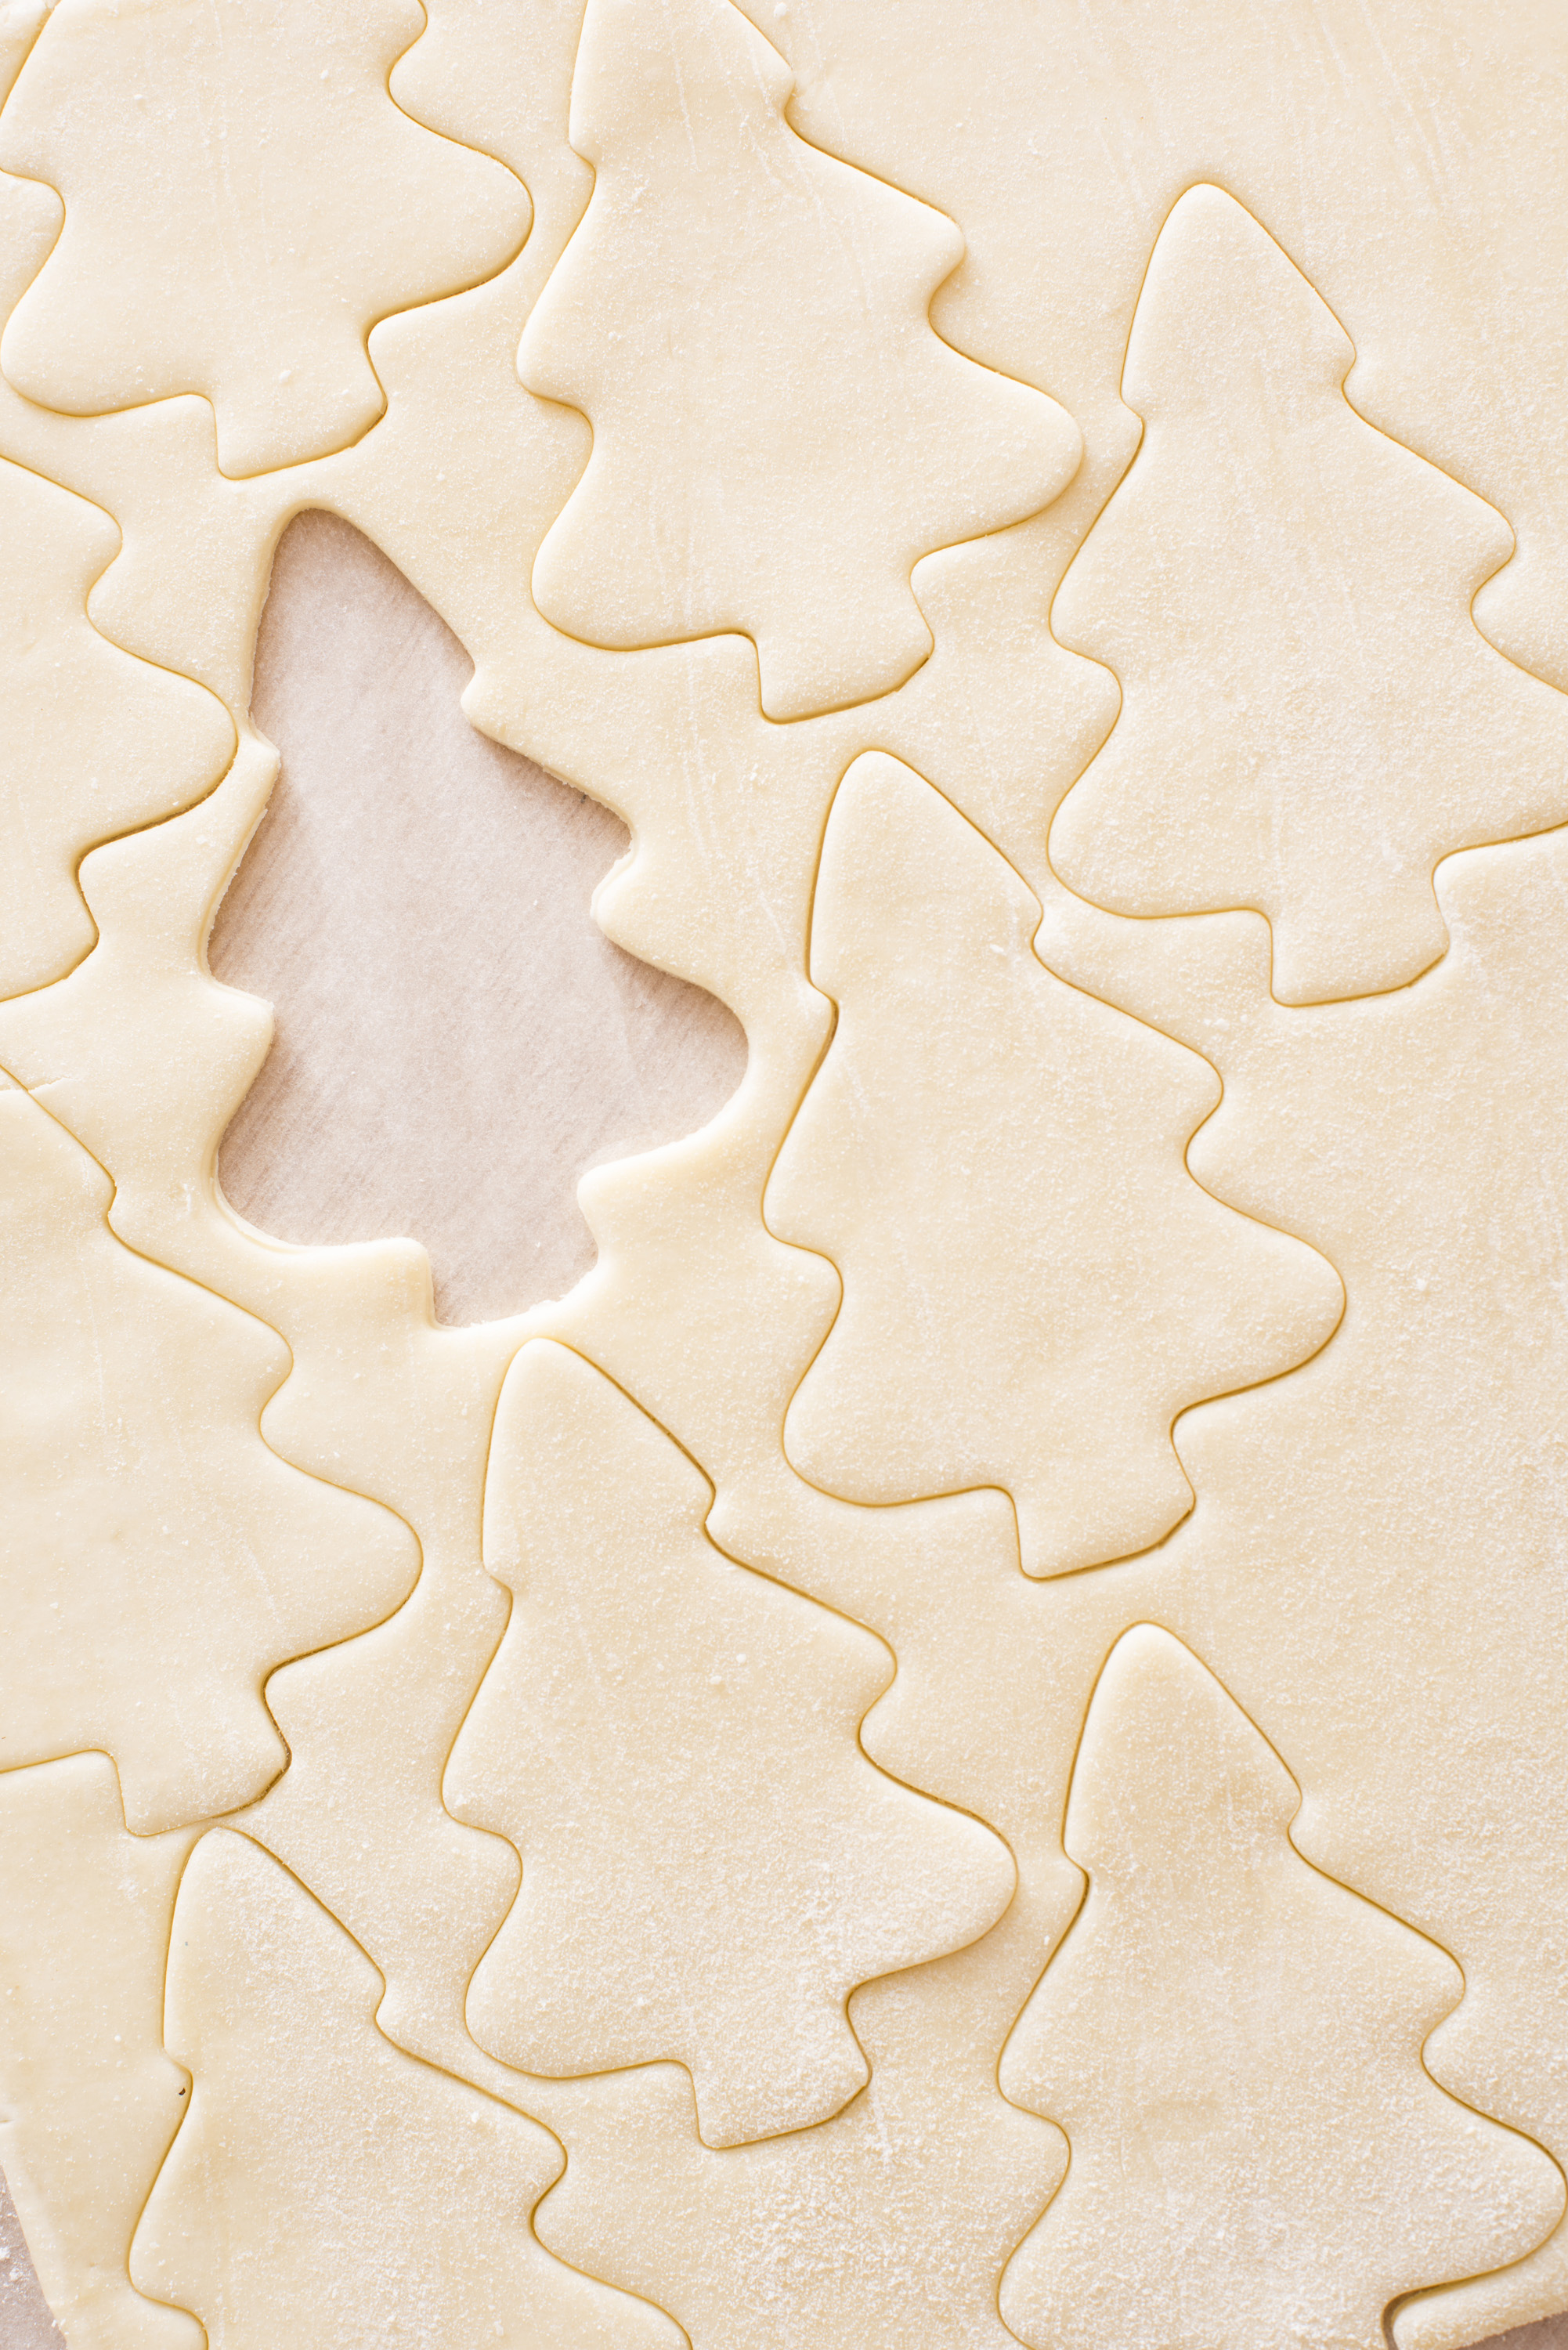 Baking homemade Christmas tree shaped cookies with a full frame background of uncooked rolled dough with the cut out shapes of the biscuits